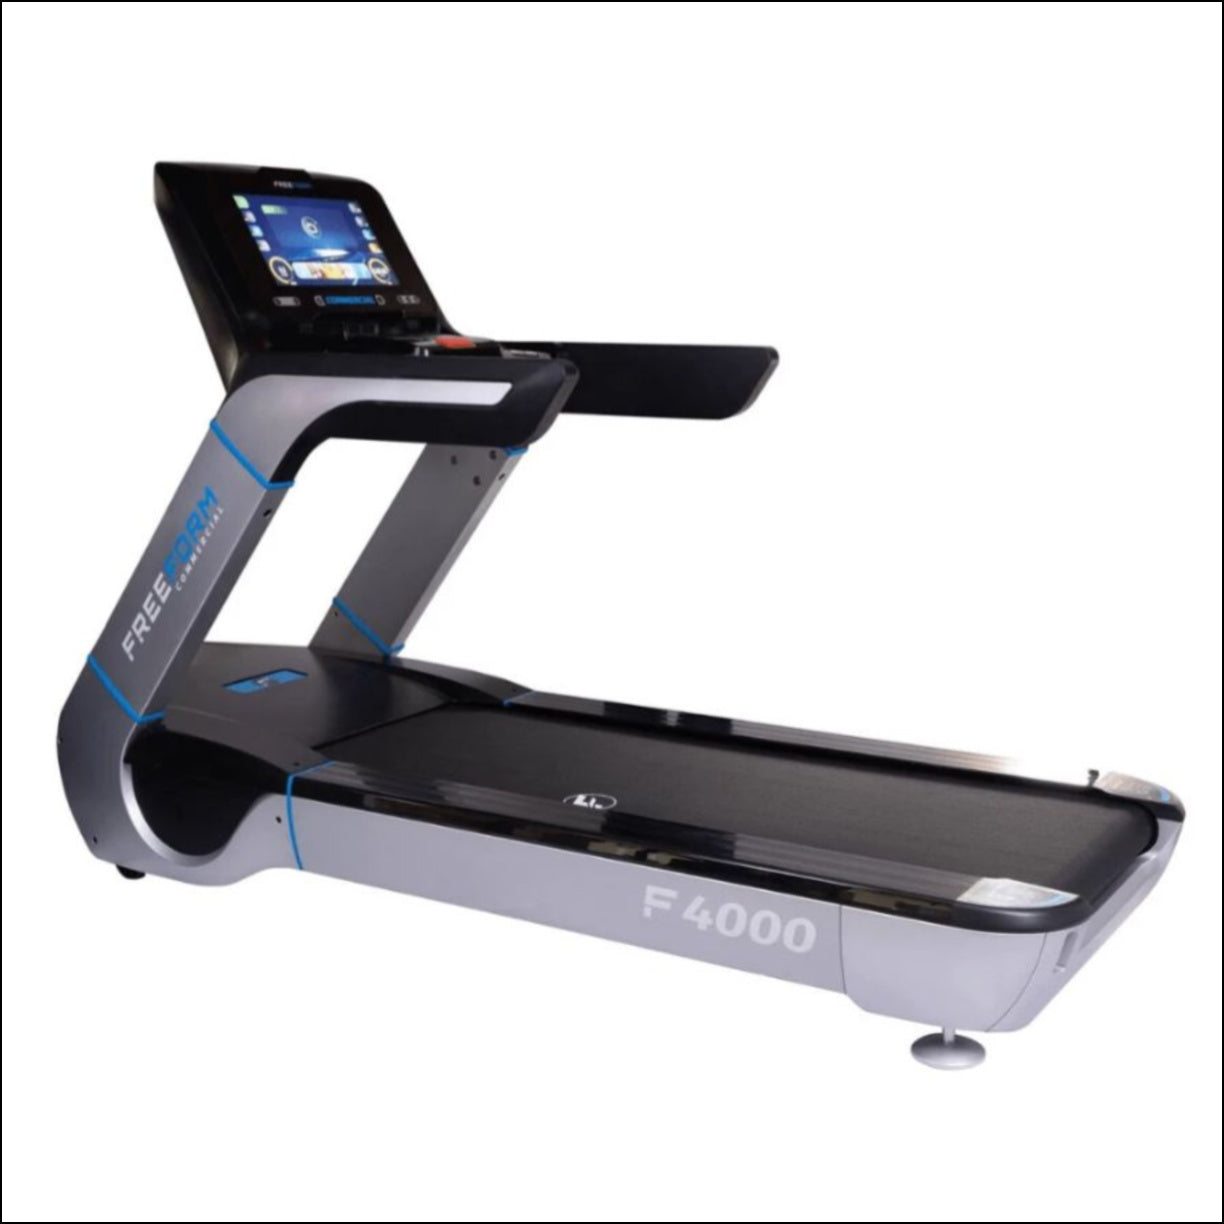 Experience one of the most aesthetically pleasing treadmills on the market. The Freeform Commercial F4000 Treadmill is designed for those looking for an easy-to-maintain, high-end, durable treadmill. Engineered for safety, the F4000 comes stacked with features including an industry-leading powerful 8.0 continuous horsepower motor and engaging 18.5